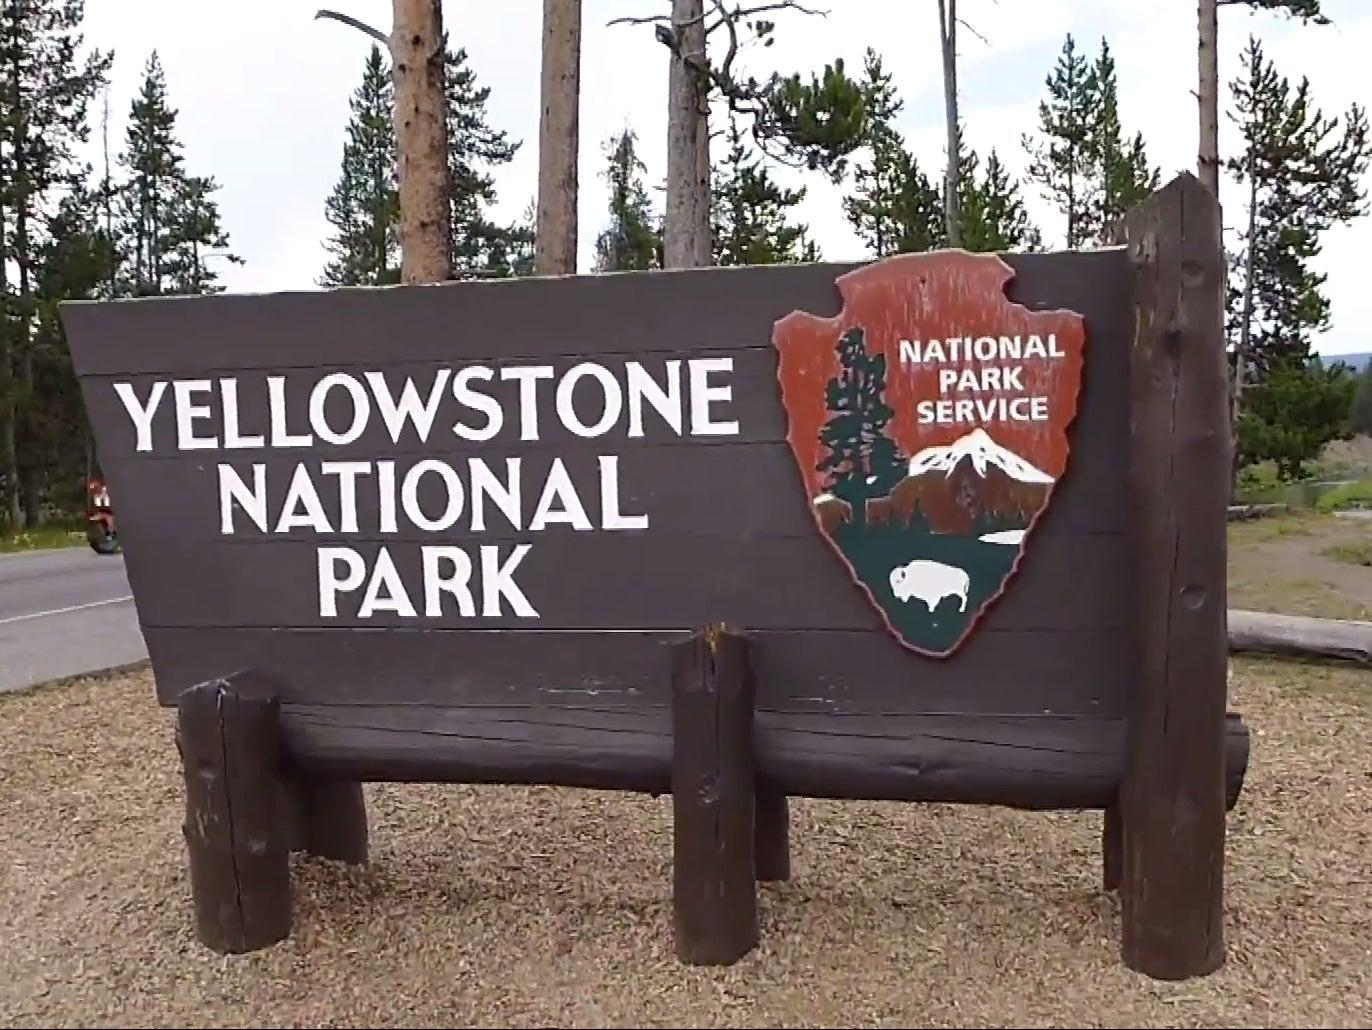 Utah Man charged with damaging Yellowstone while digging for infamous Forrest Fern treasure